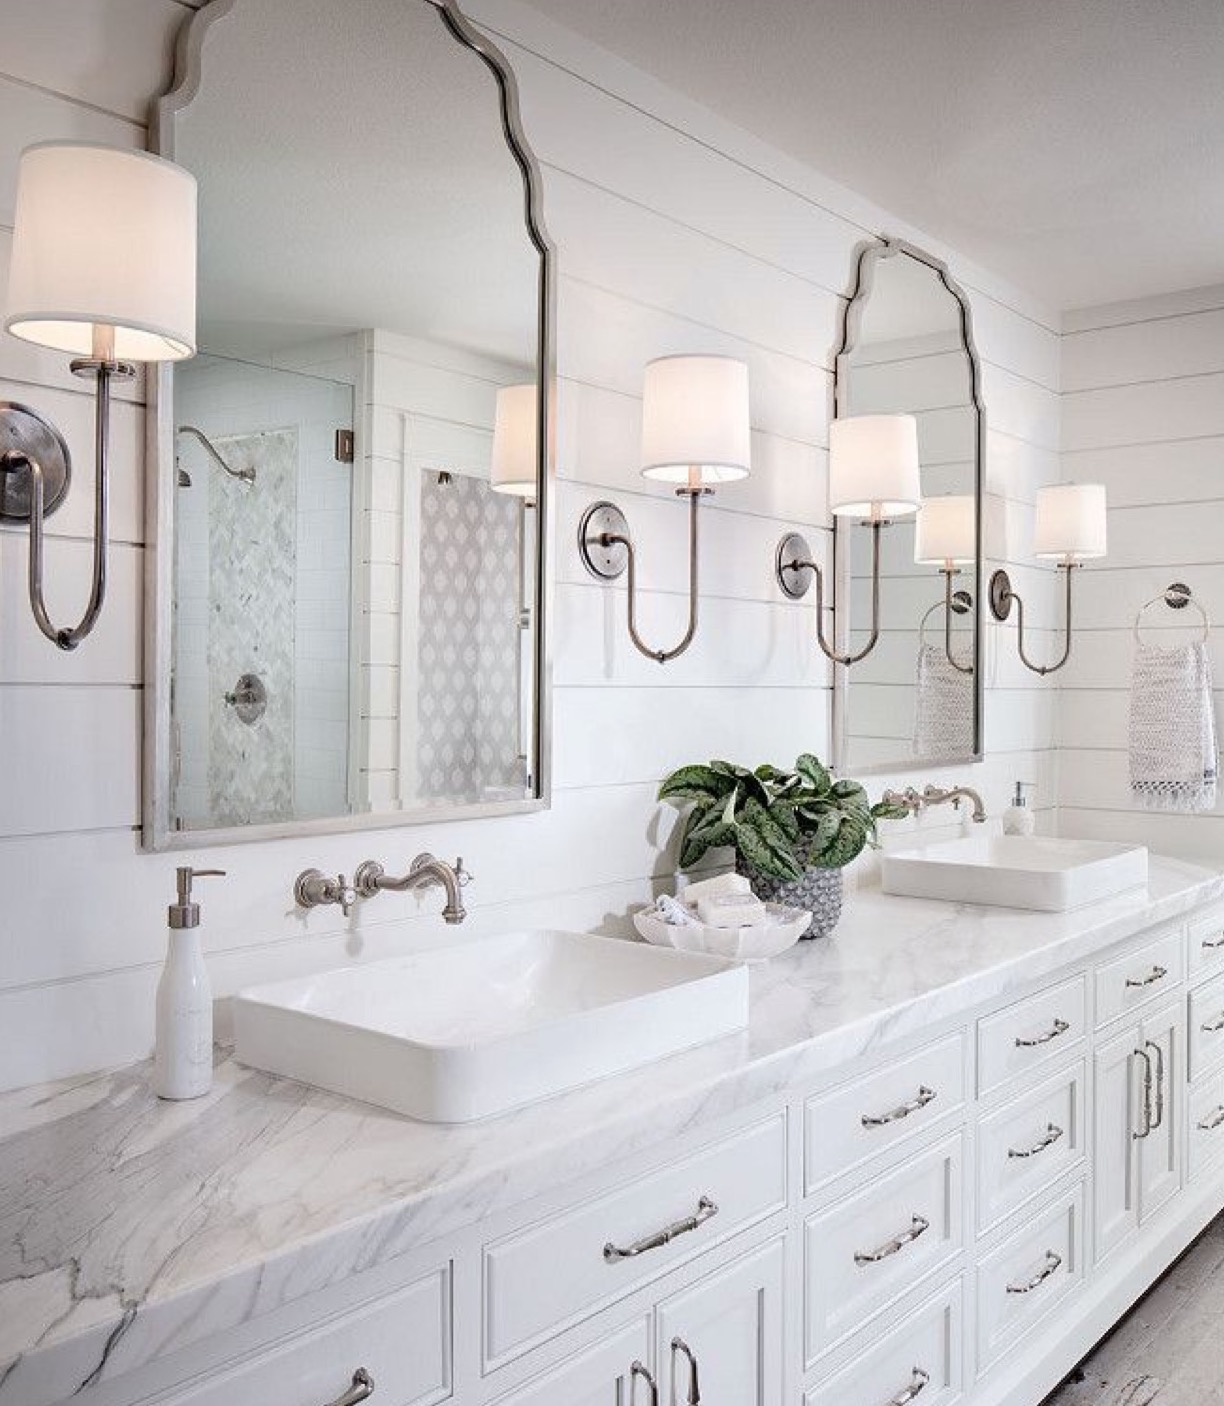 INspiration- We usually start with inspiration our customers have already found via Pinterest or houzz. This photo was provided by the client during our initial consultation.